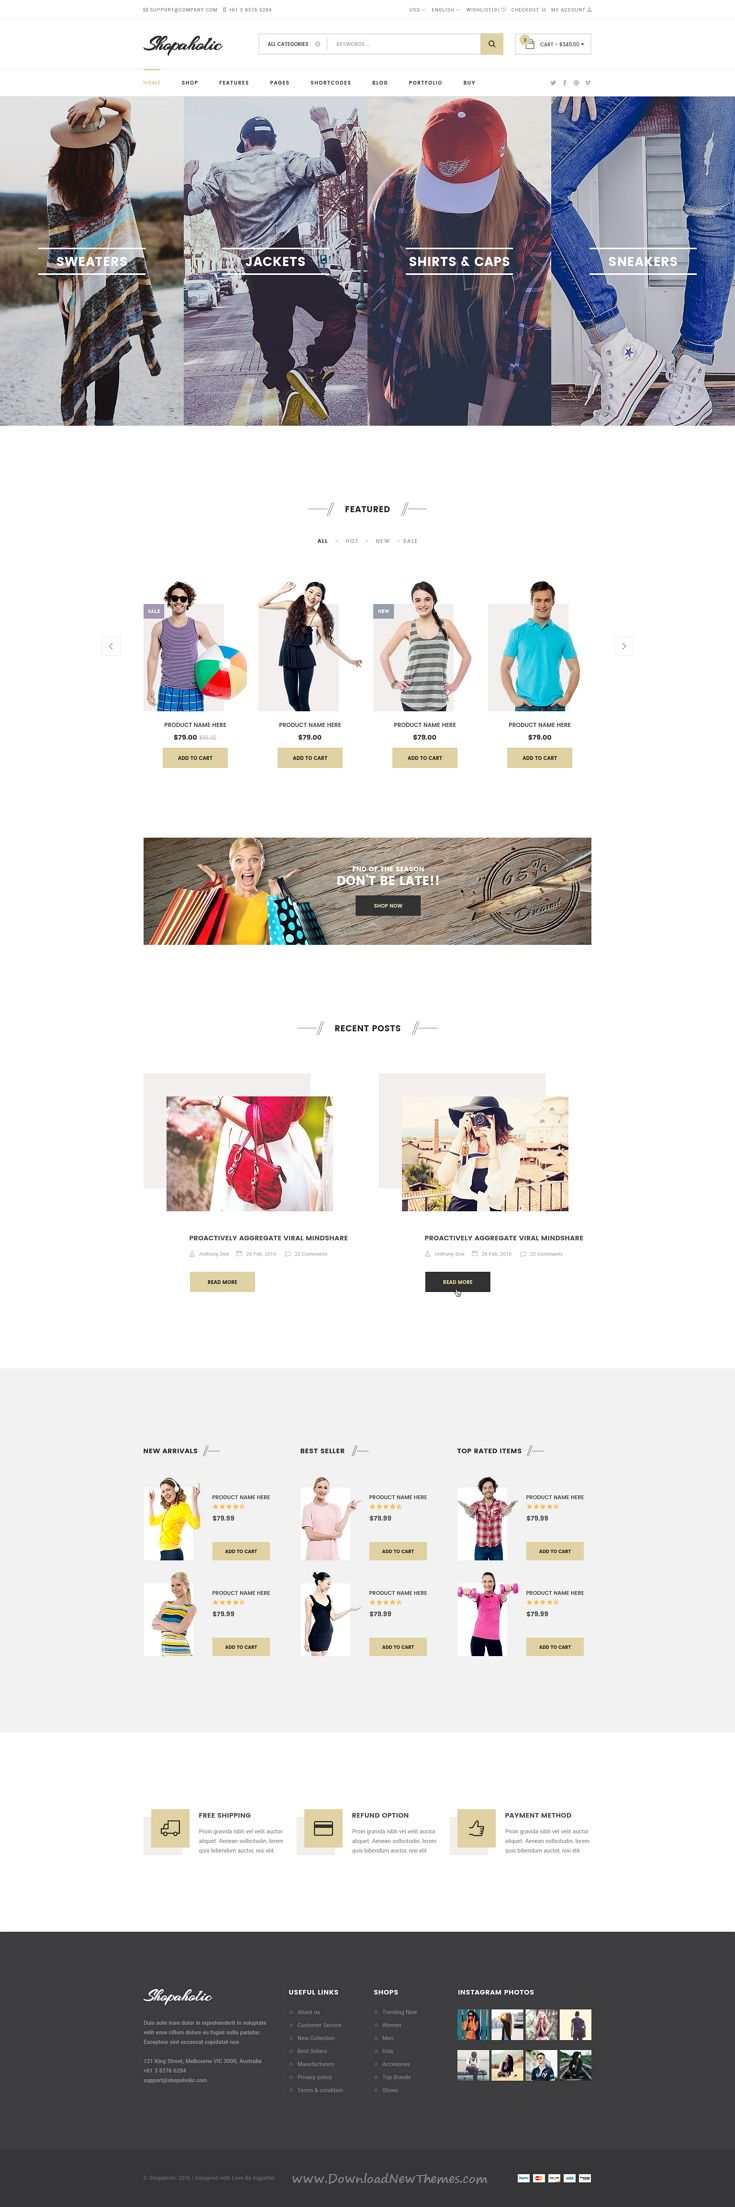 Shopaholic is a Professionally designed eCommerce PSD Template comes with 11 stunning homepage layouts.